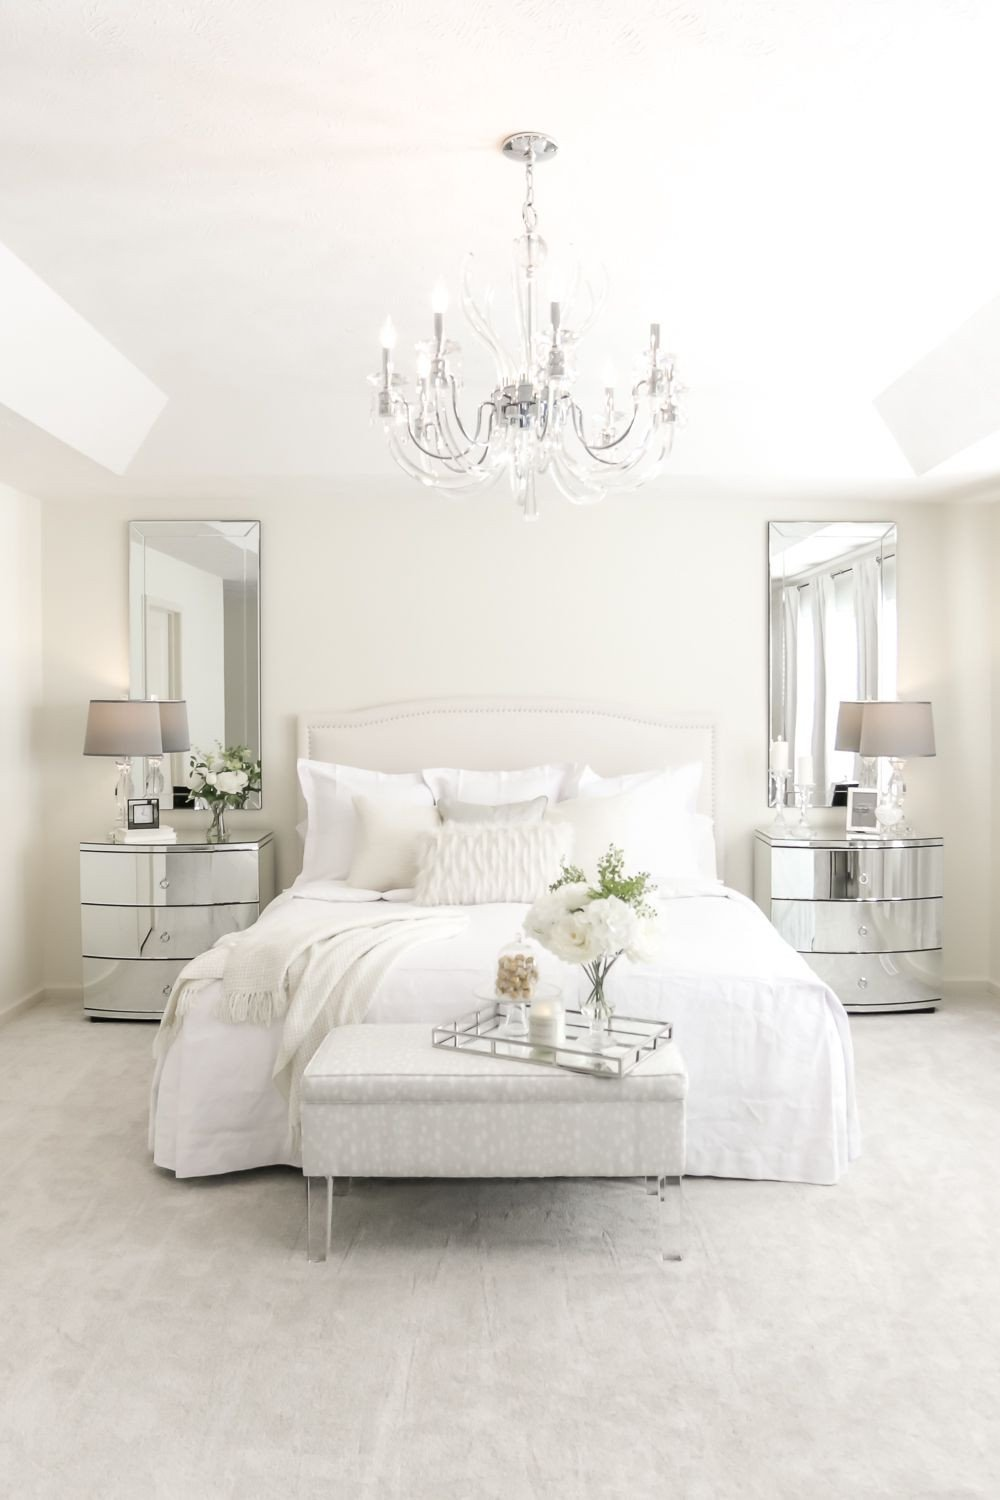 Small Chandeliers for Bedroom Best Of Mirrored Nightstands Chandelier and All White Bedding You